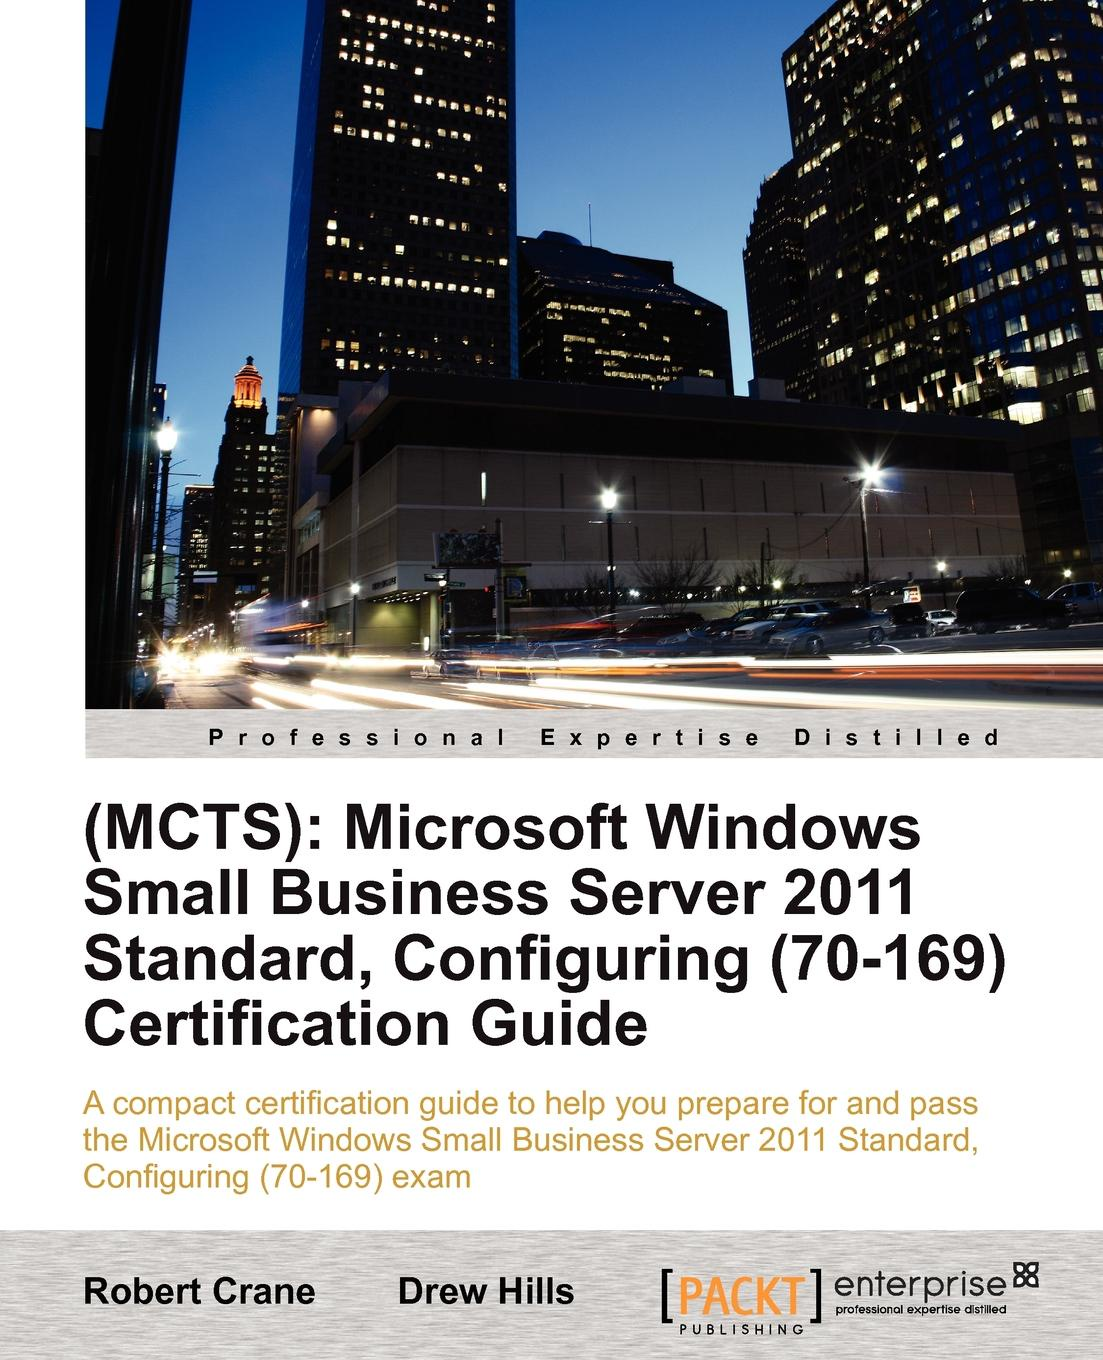 Drew Hills, Robert Crane (Be Mba McP) (Mcts). Microsoft Windows Small Business Server 2011 Standard, Configuring (70-169) Certification Guide mcts microsoft® exchange server 2007 configuration study guide